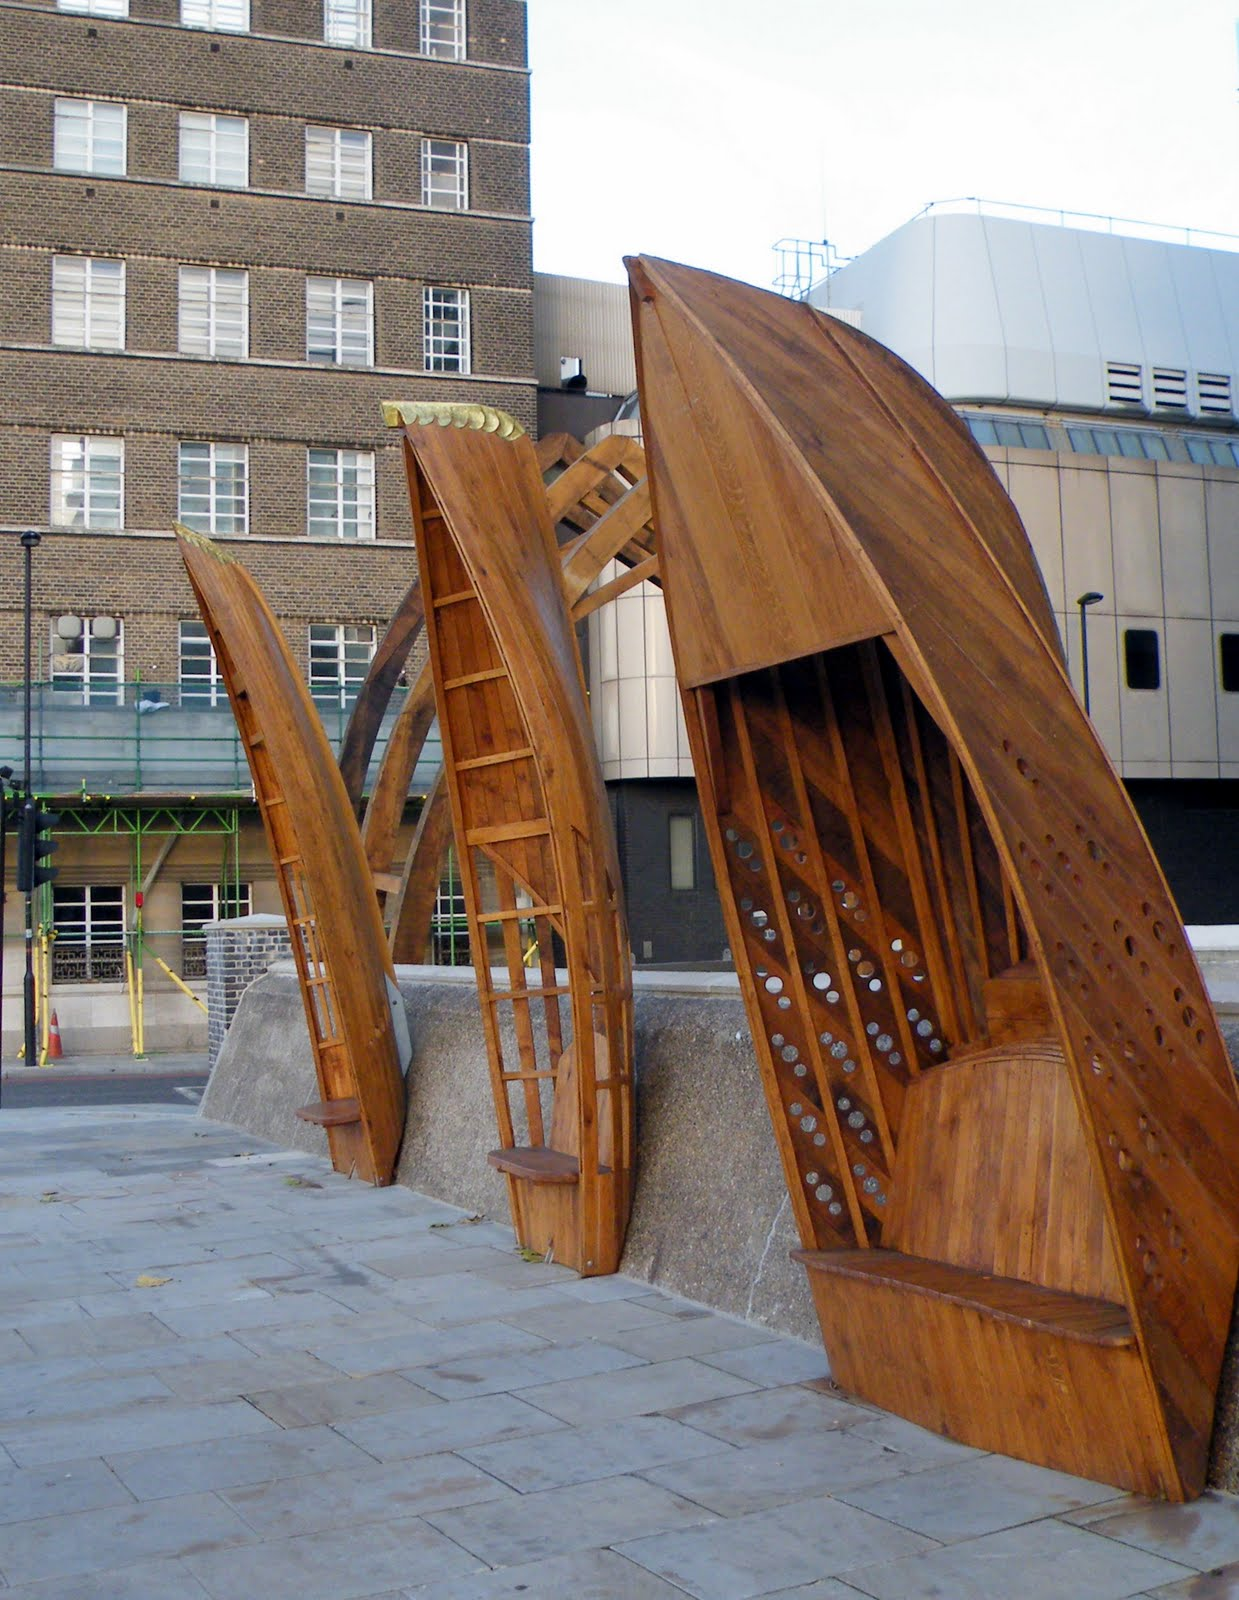 ROWING FOR PLEASURE Boats as street furniture